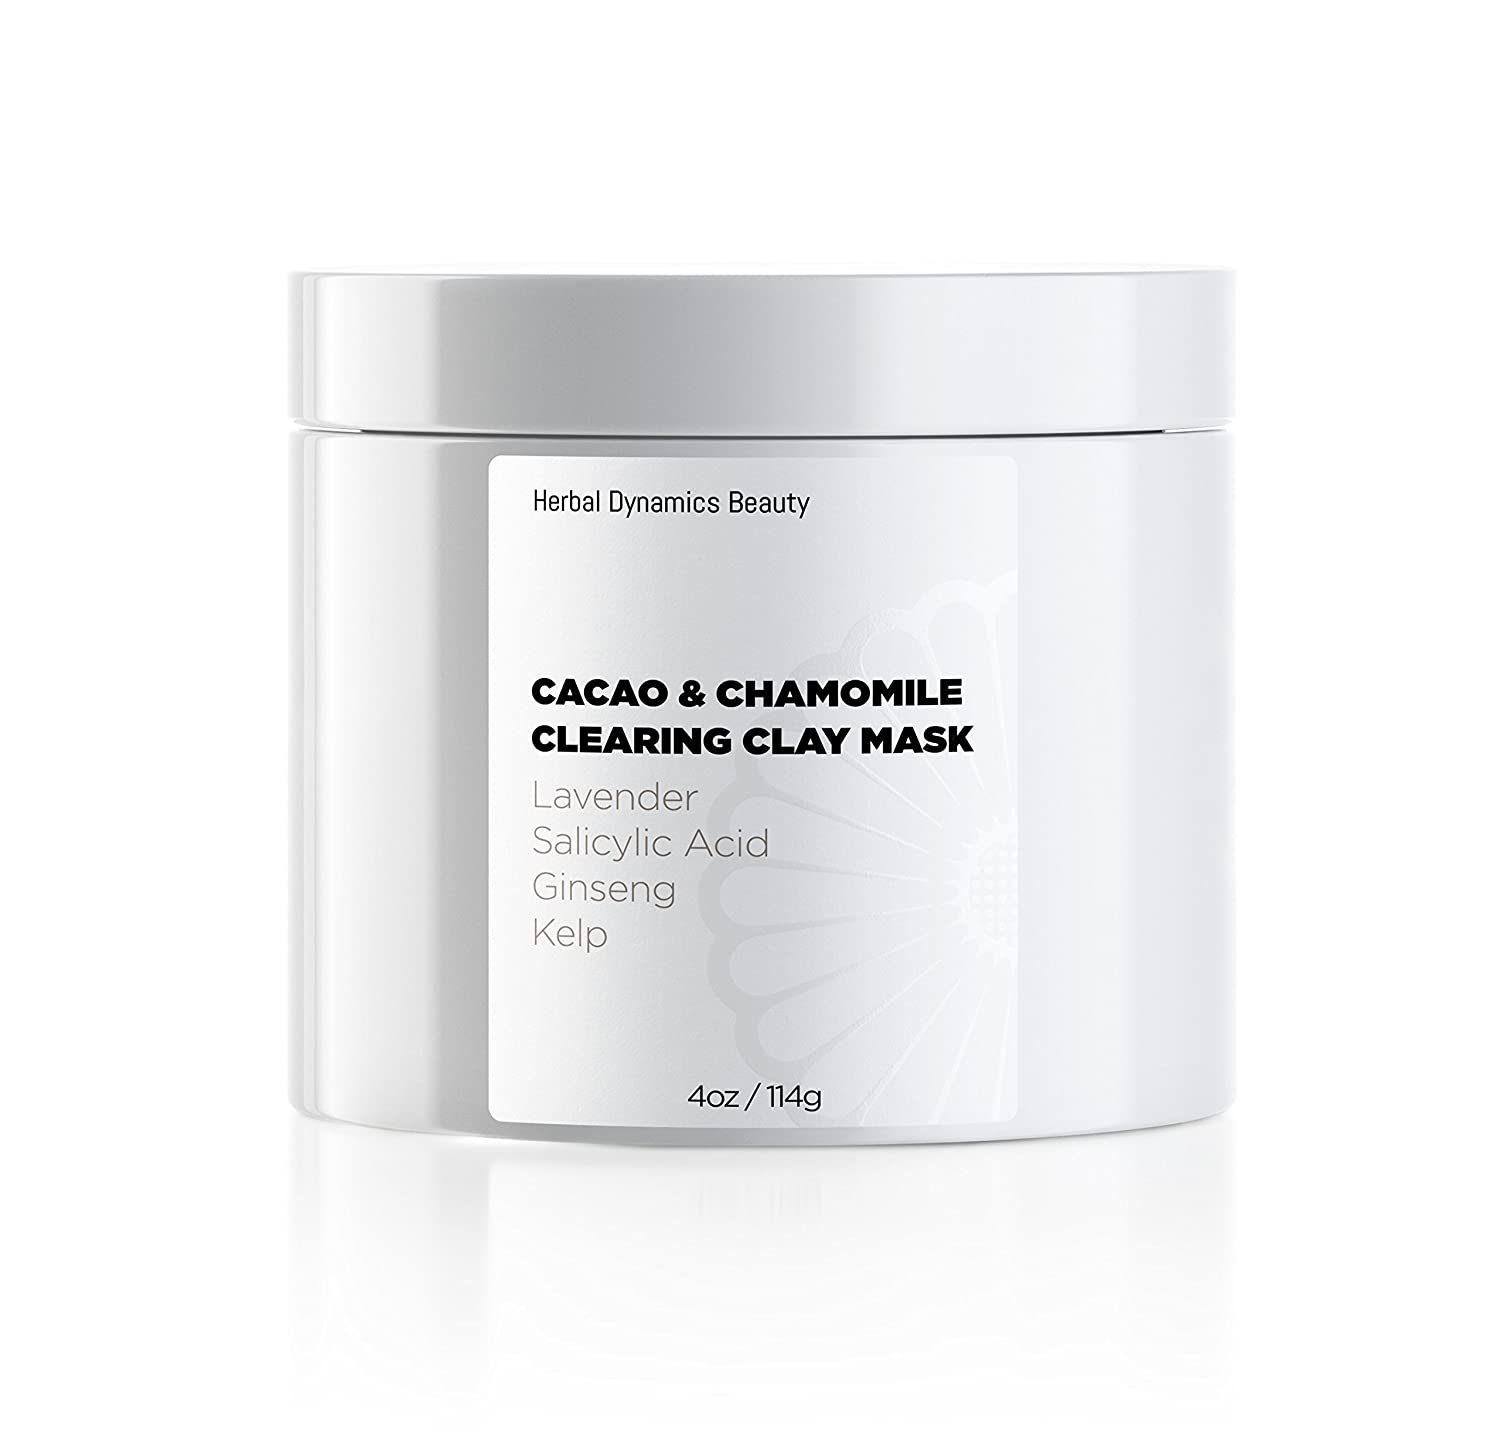 HD Beauty Cacao & Chamomile Clearing Clay Mask with Bentonite Clay, Salicylic Acid + Sulfur for Pore Refining and Calendula + Chamomile for Soothing, 4 oz.